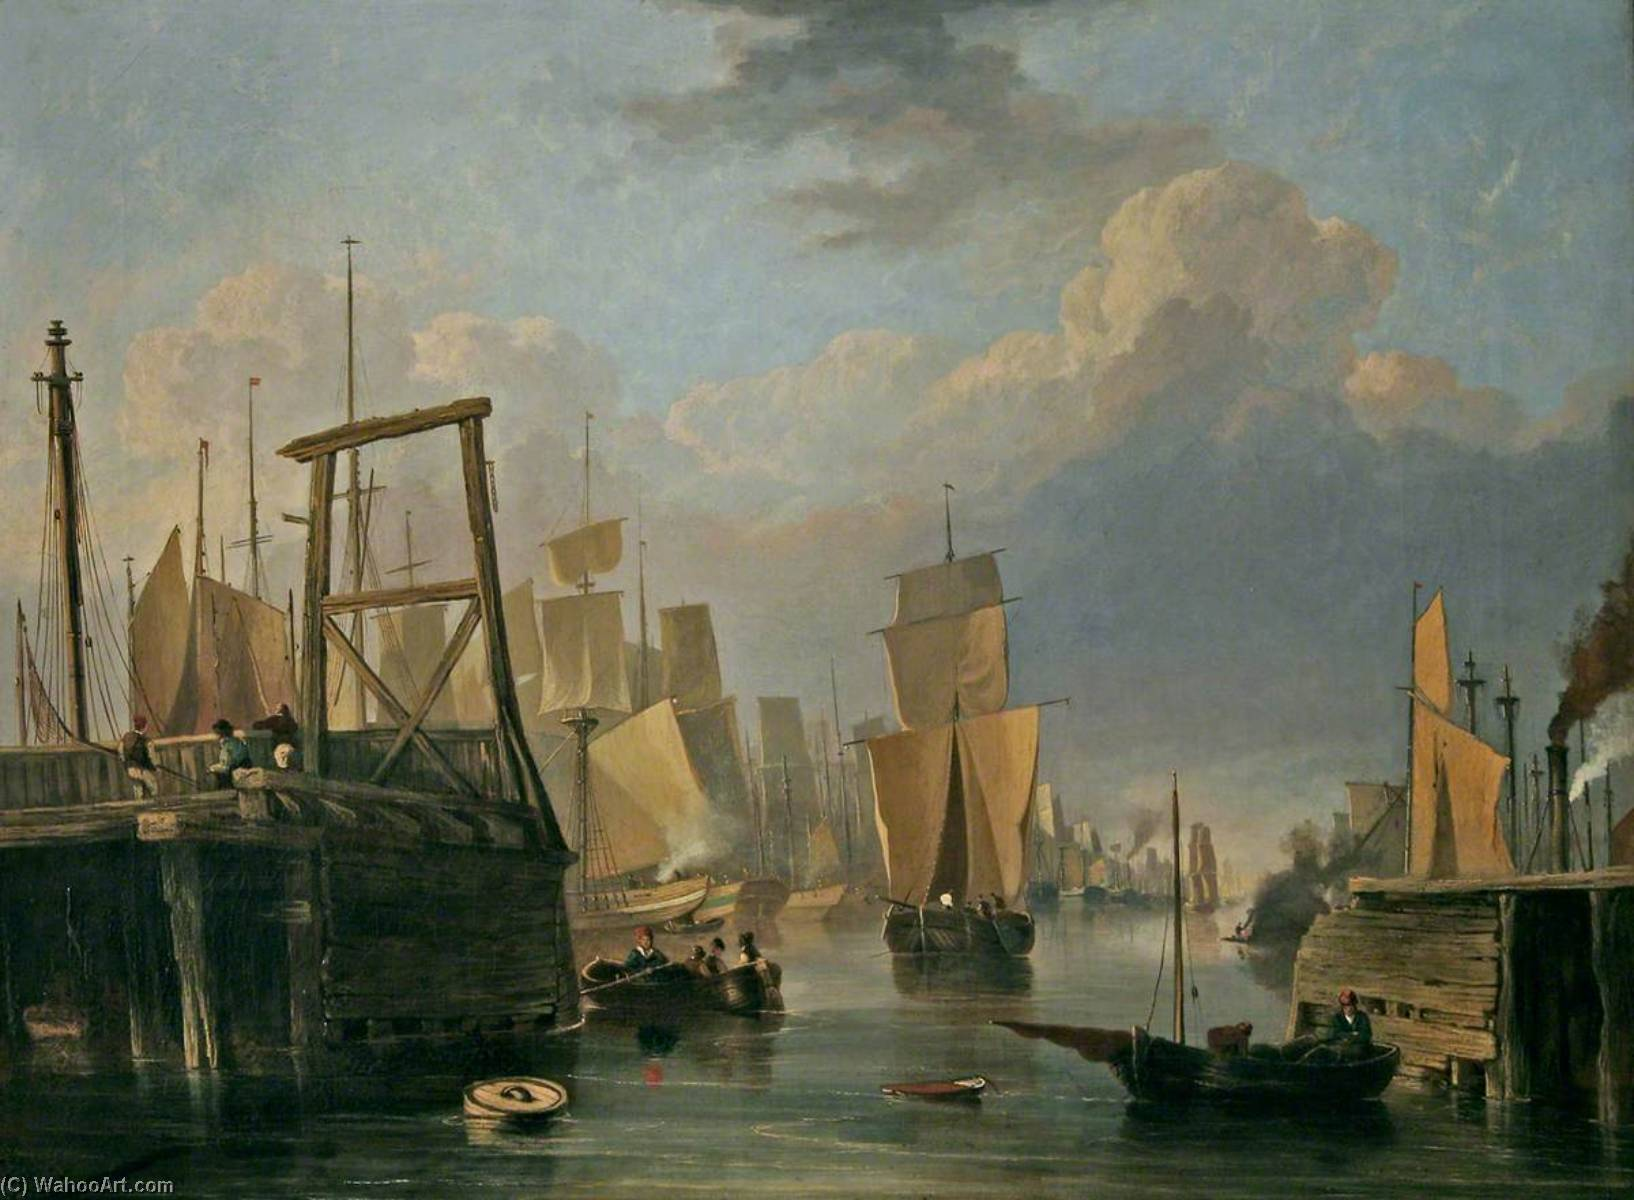 Order Painting Copy : The Removal of Old Yarmouth Bridge, Norfolk, 1837 by John Berney Crome (1768-1821) | WahooArt.com